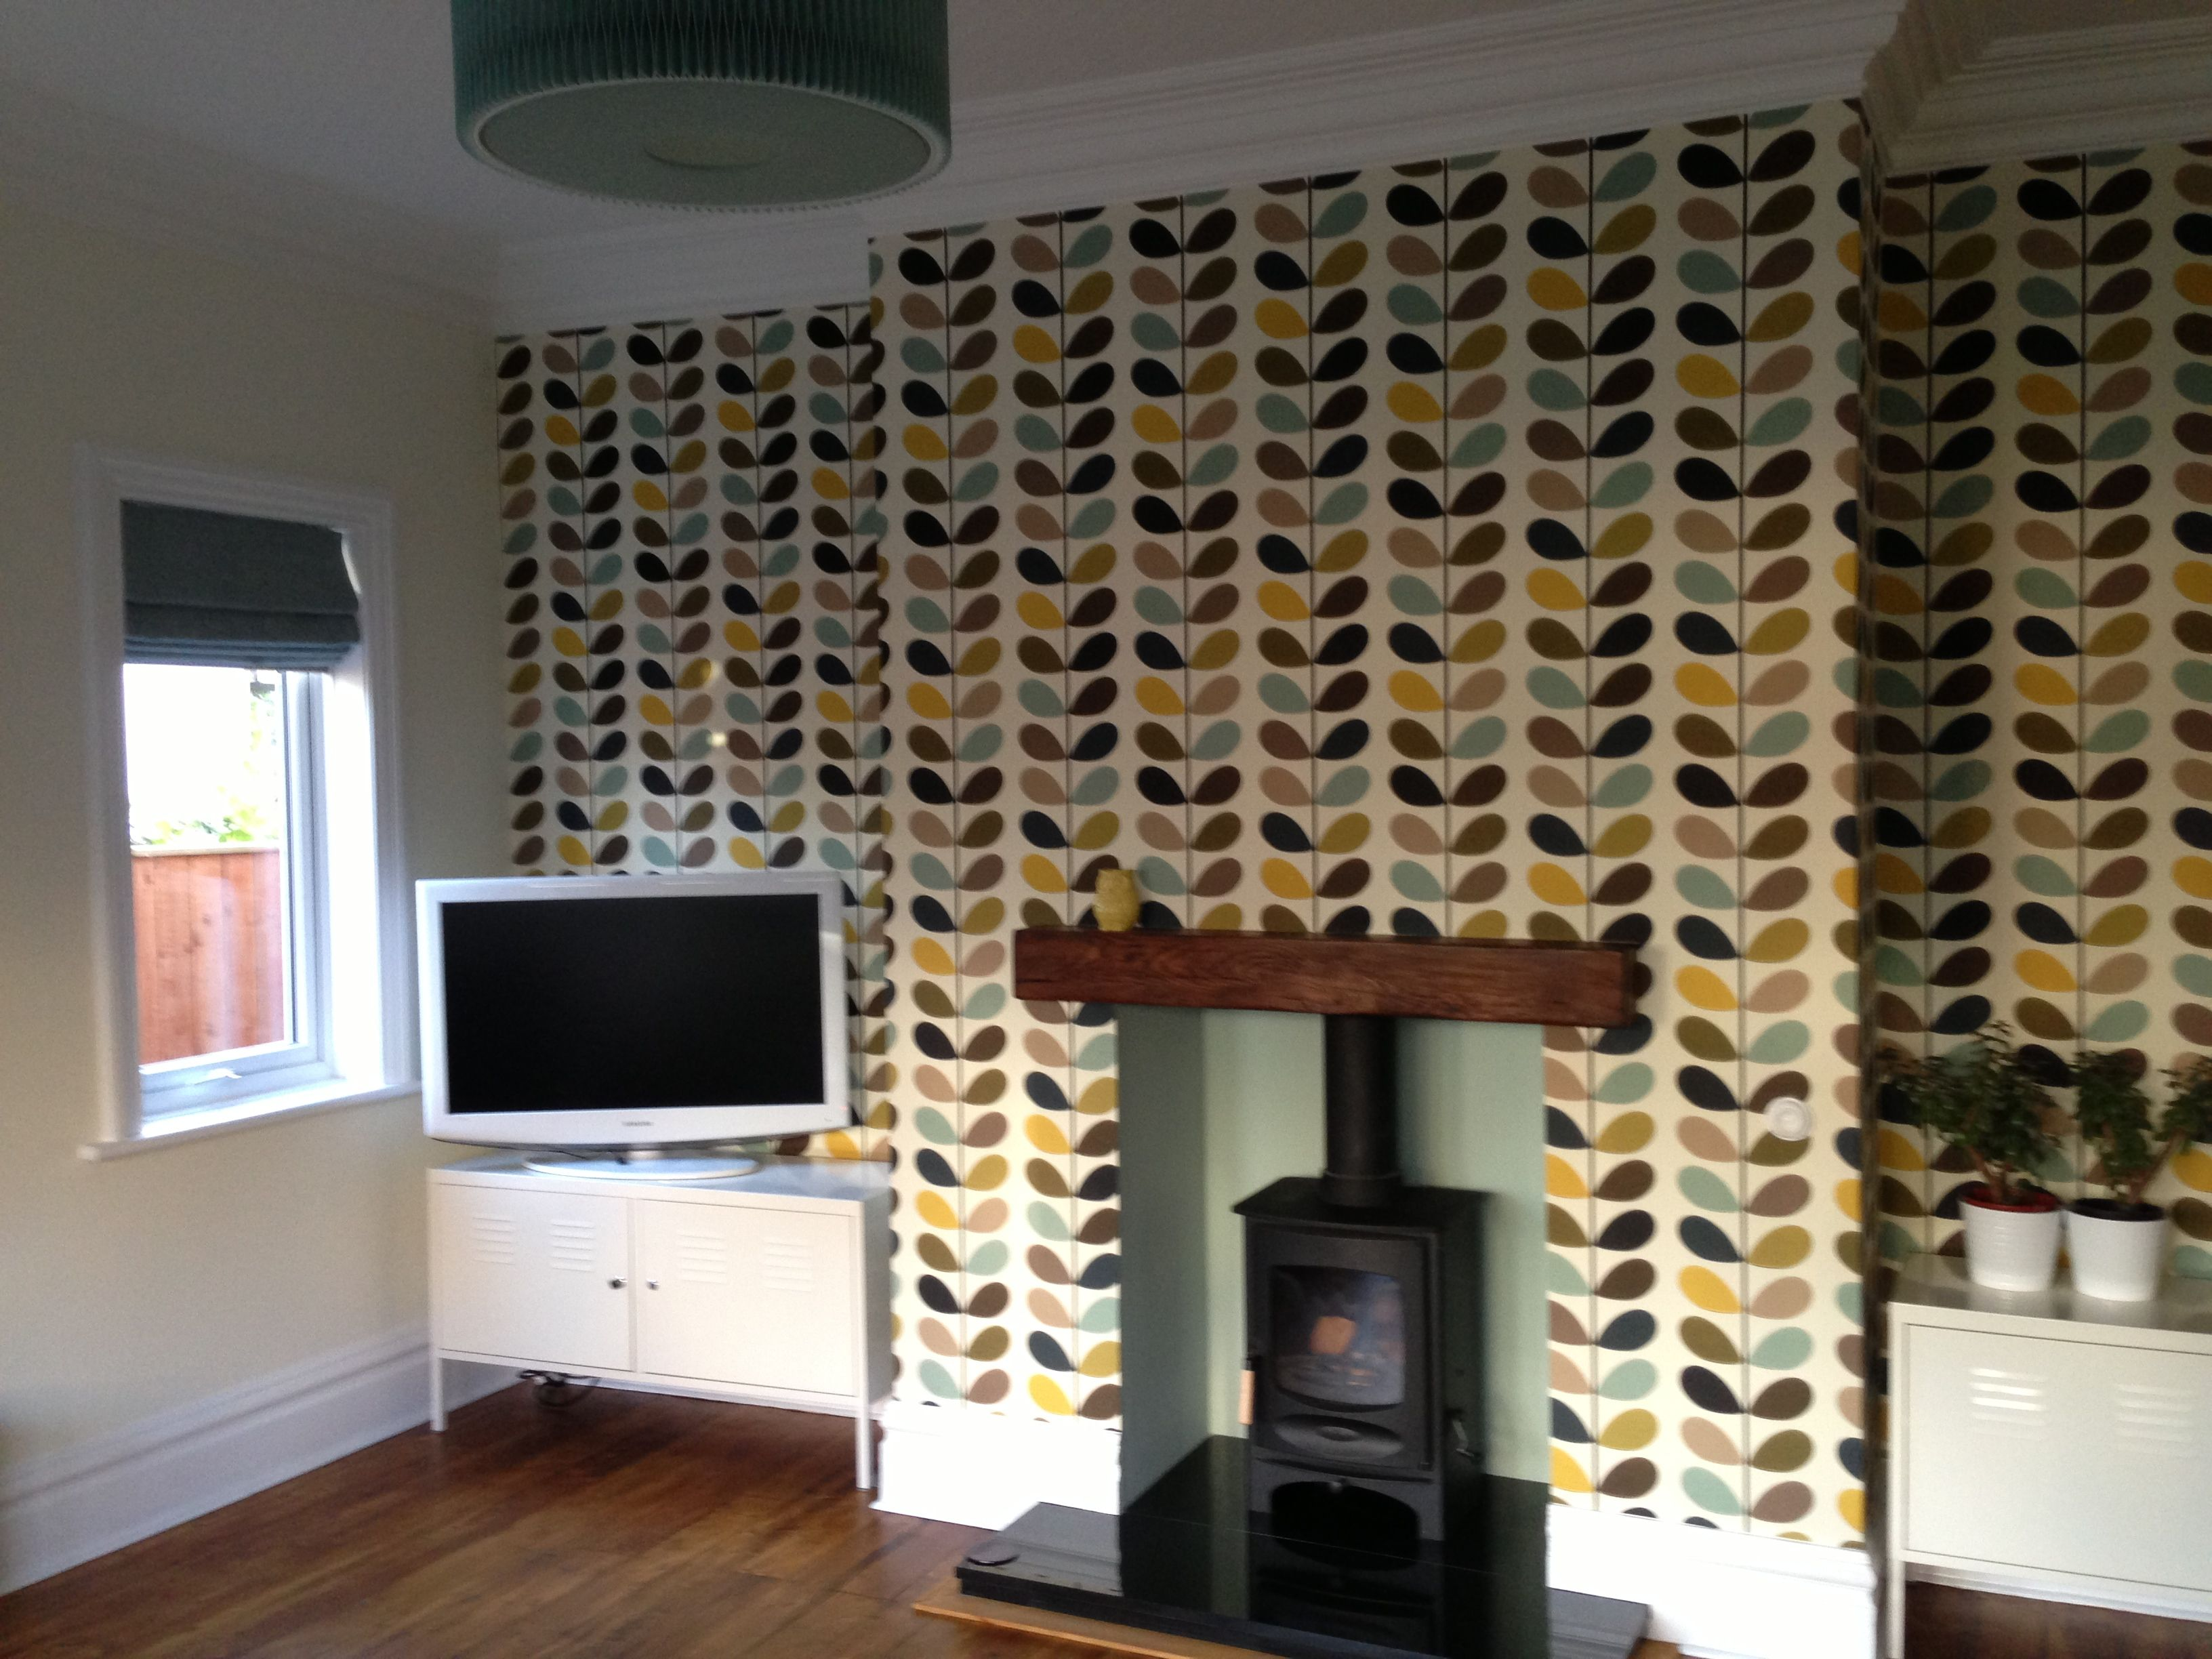 Wallpaper Living Room Our Lounge With Orla Kiely Wallpaper And Log Burner House